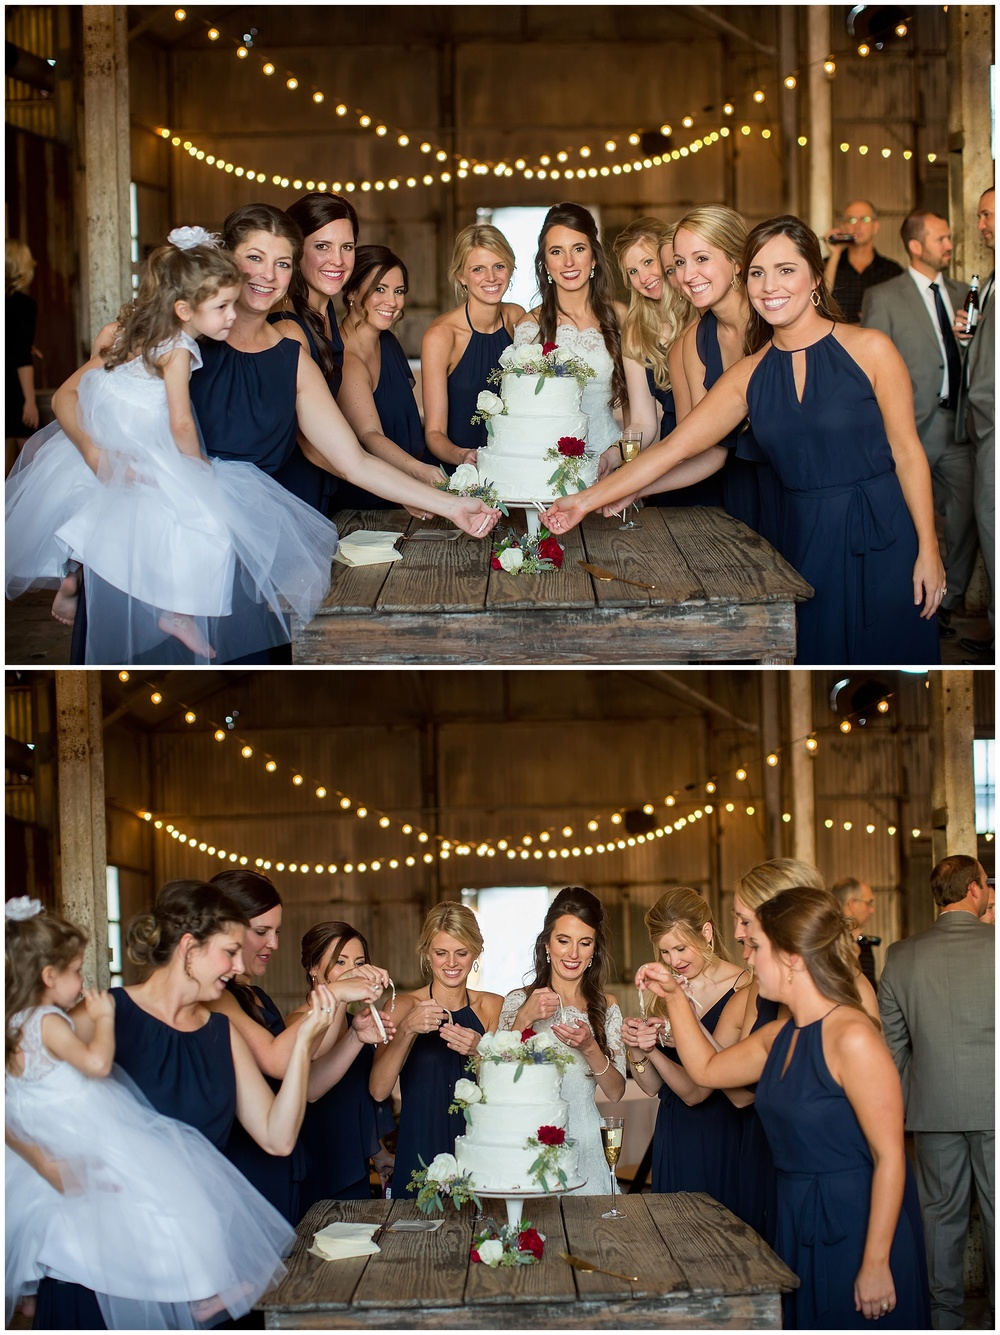 Kinler_DixieGin_Shreveport_Wedding_67.jpg